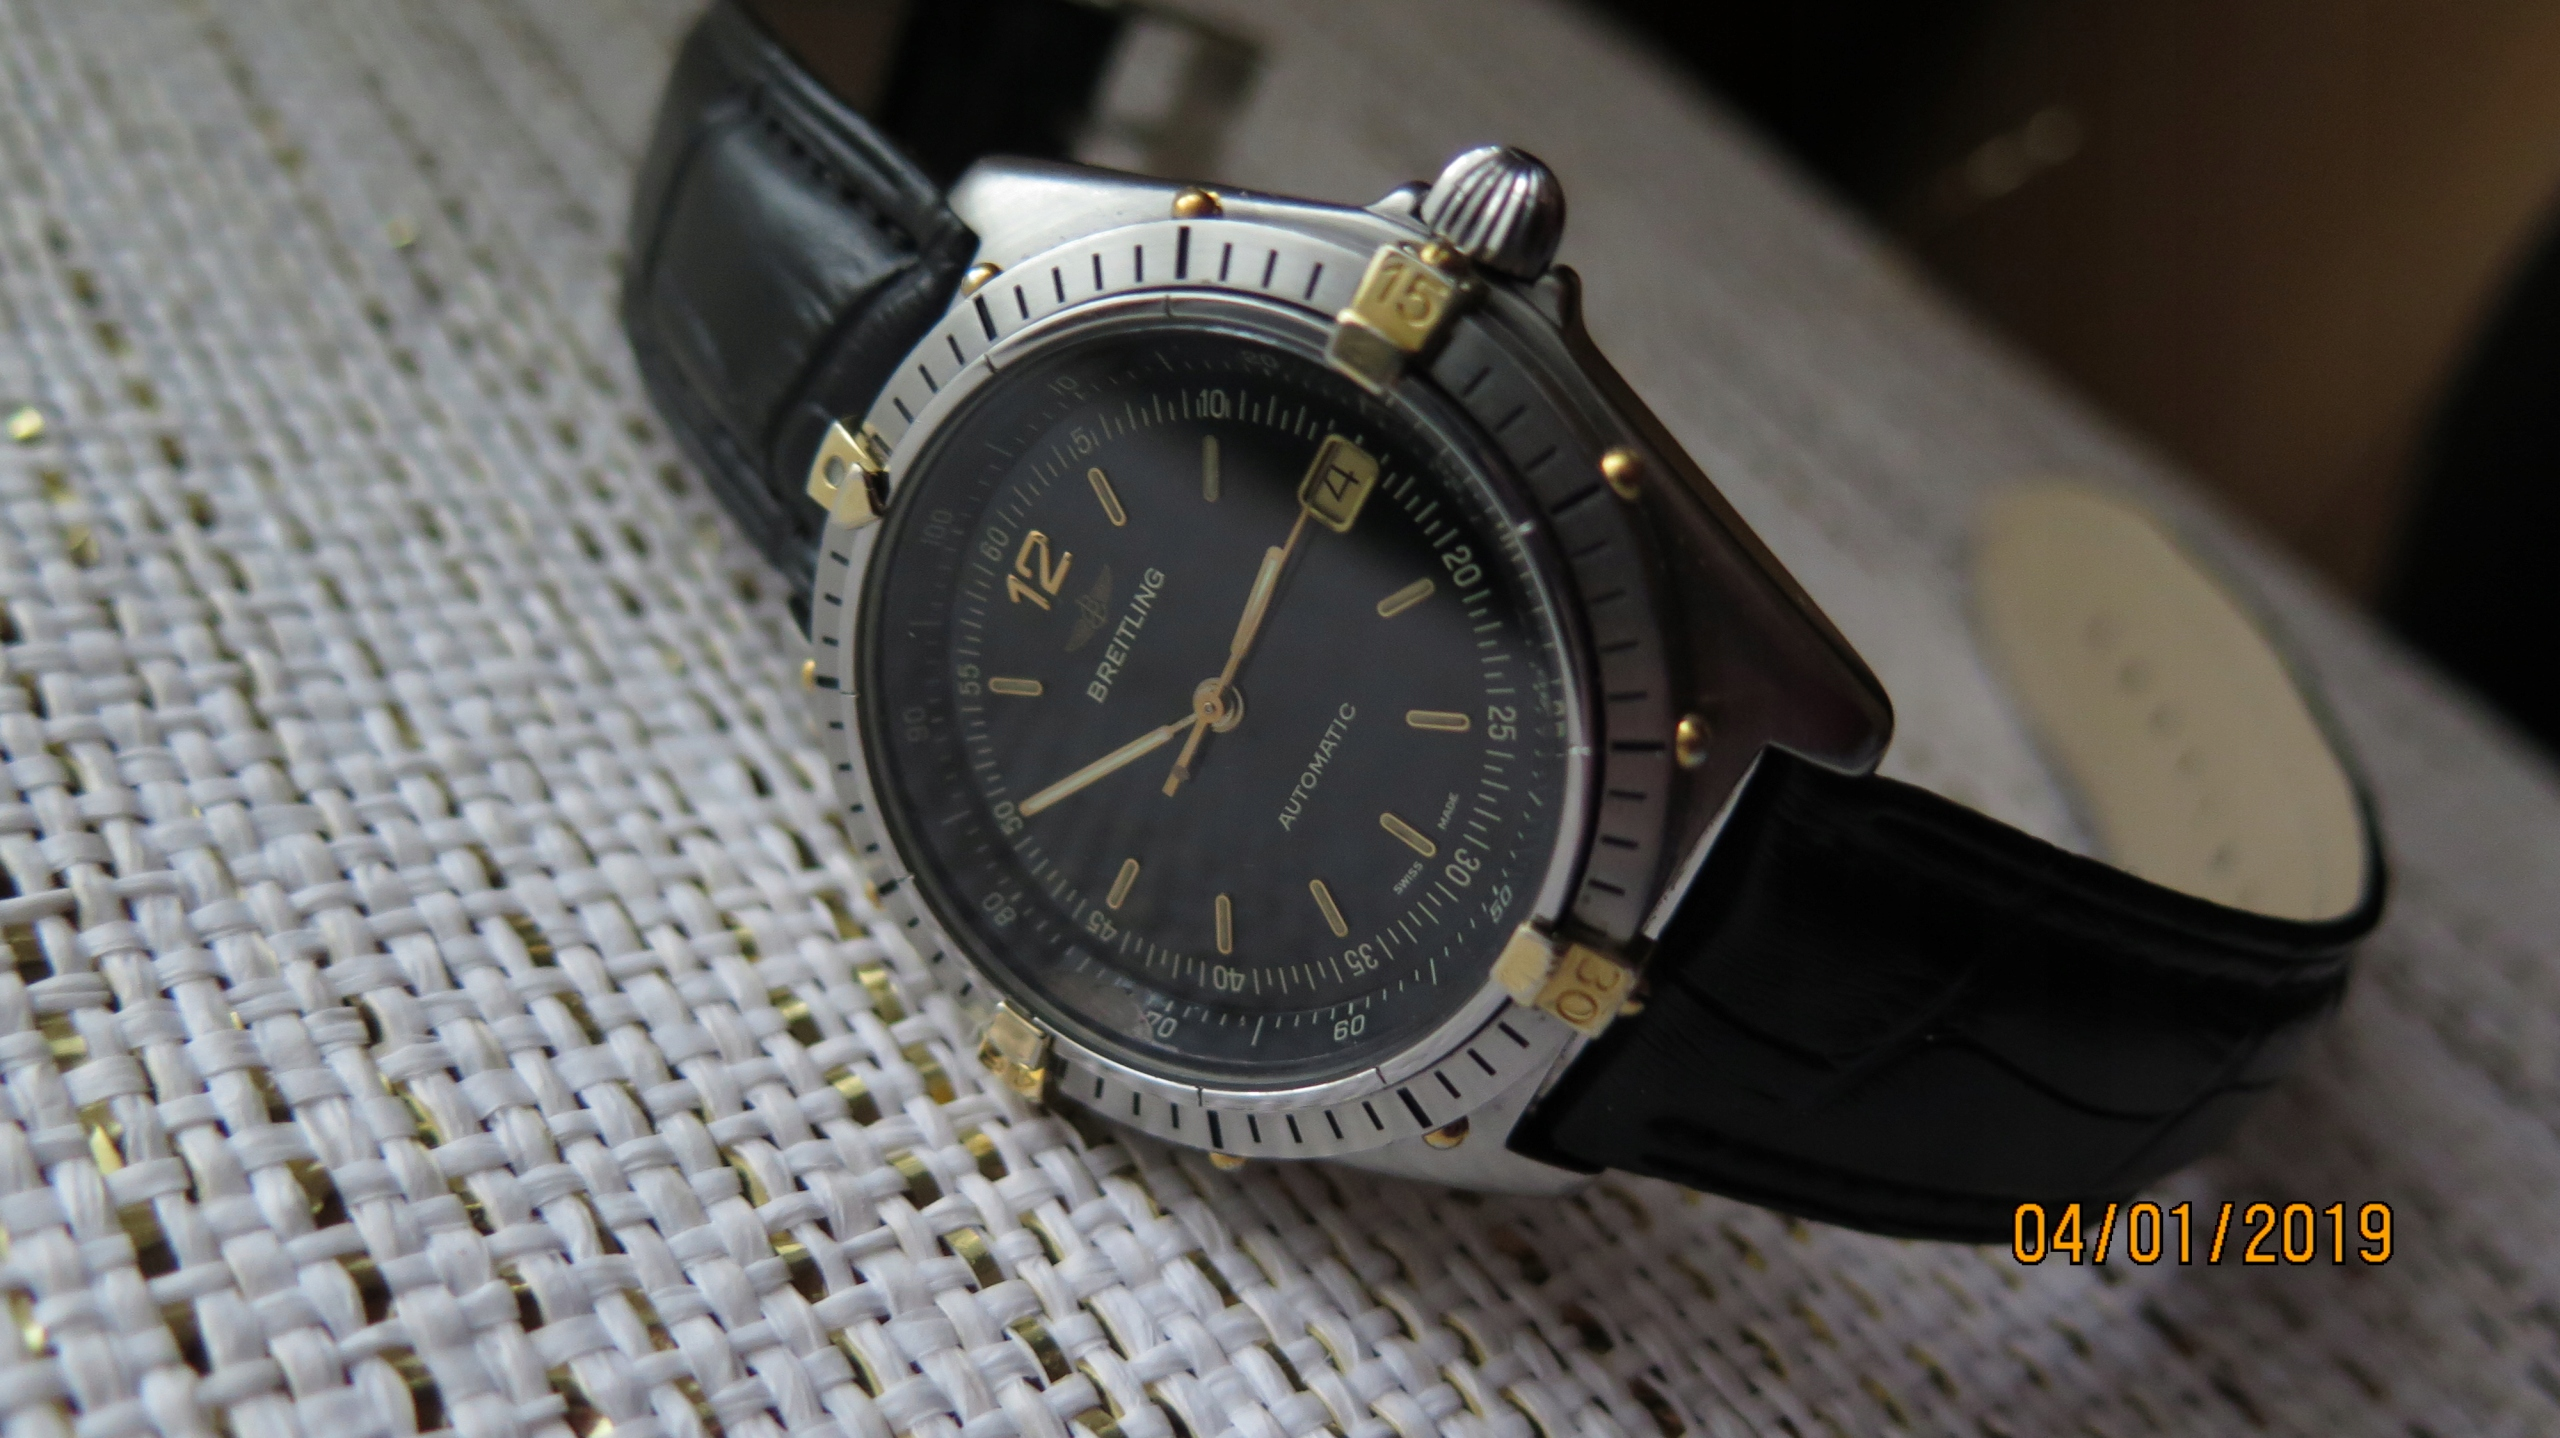 BREITLING ANTARES AUTOMATIC 100M 81970